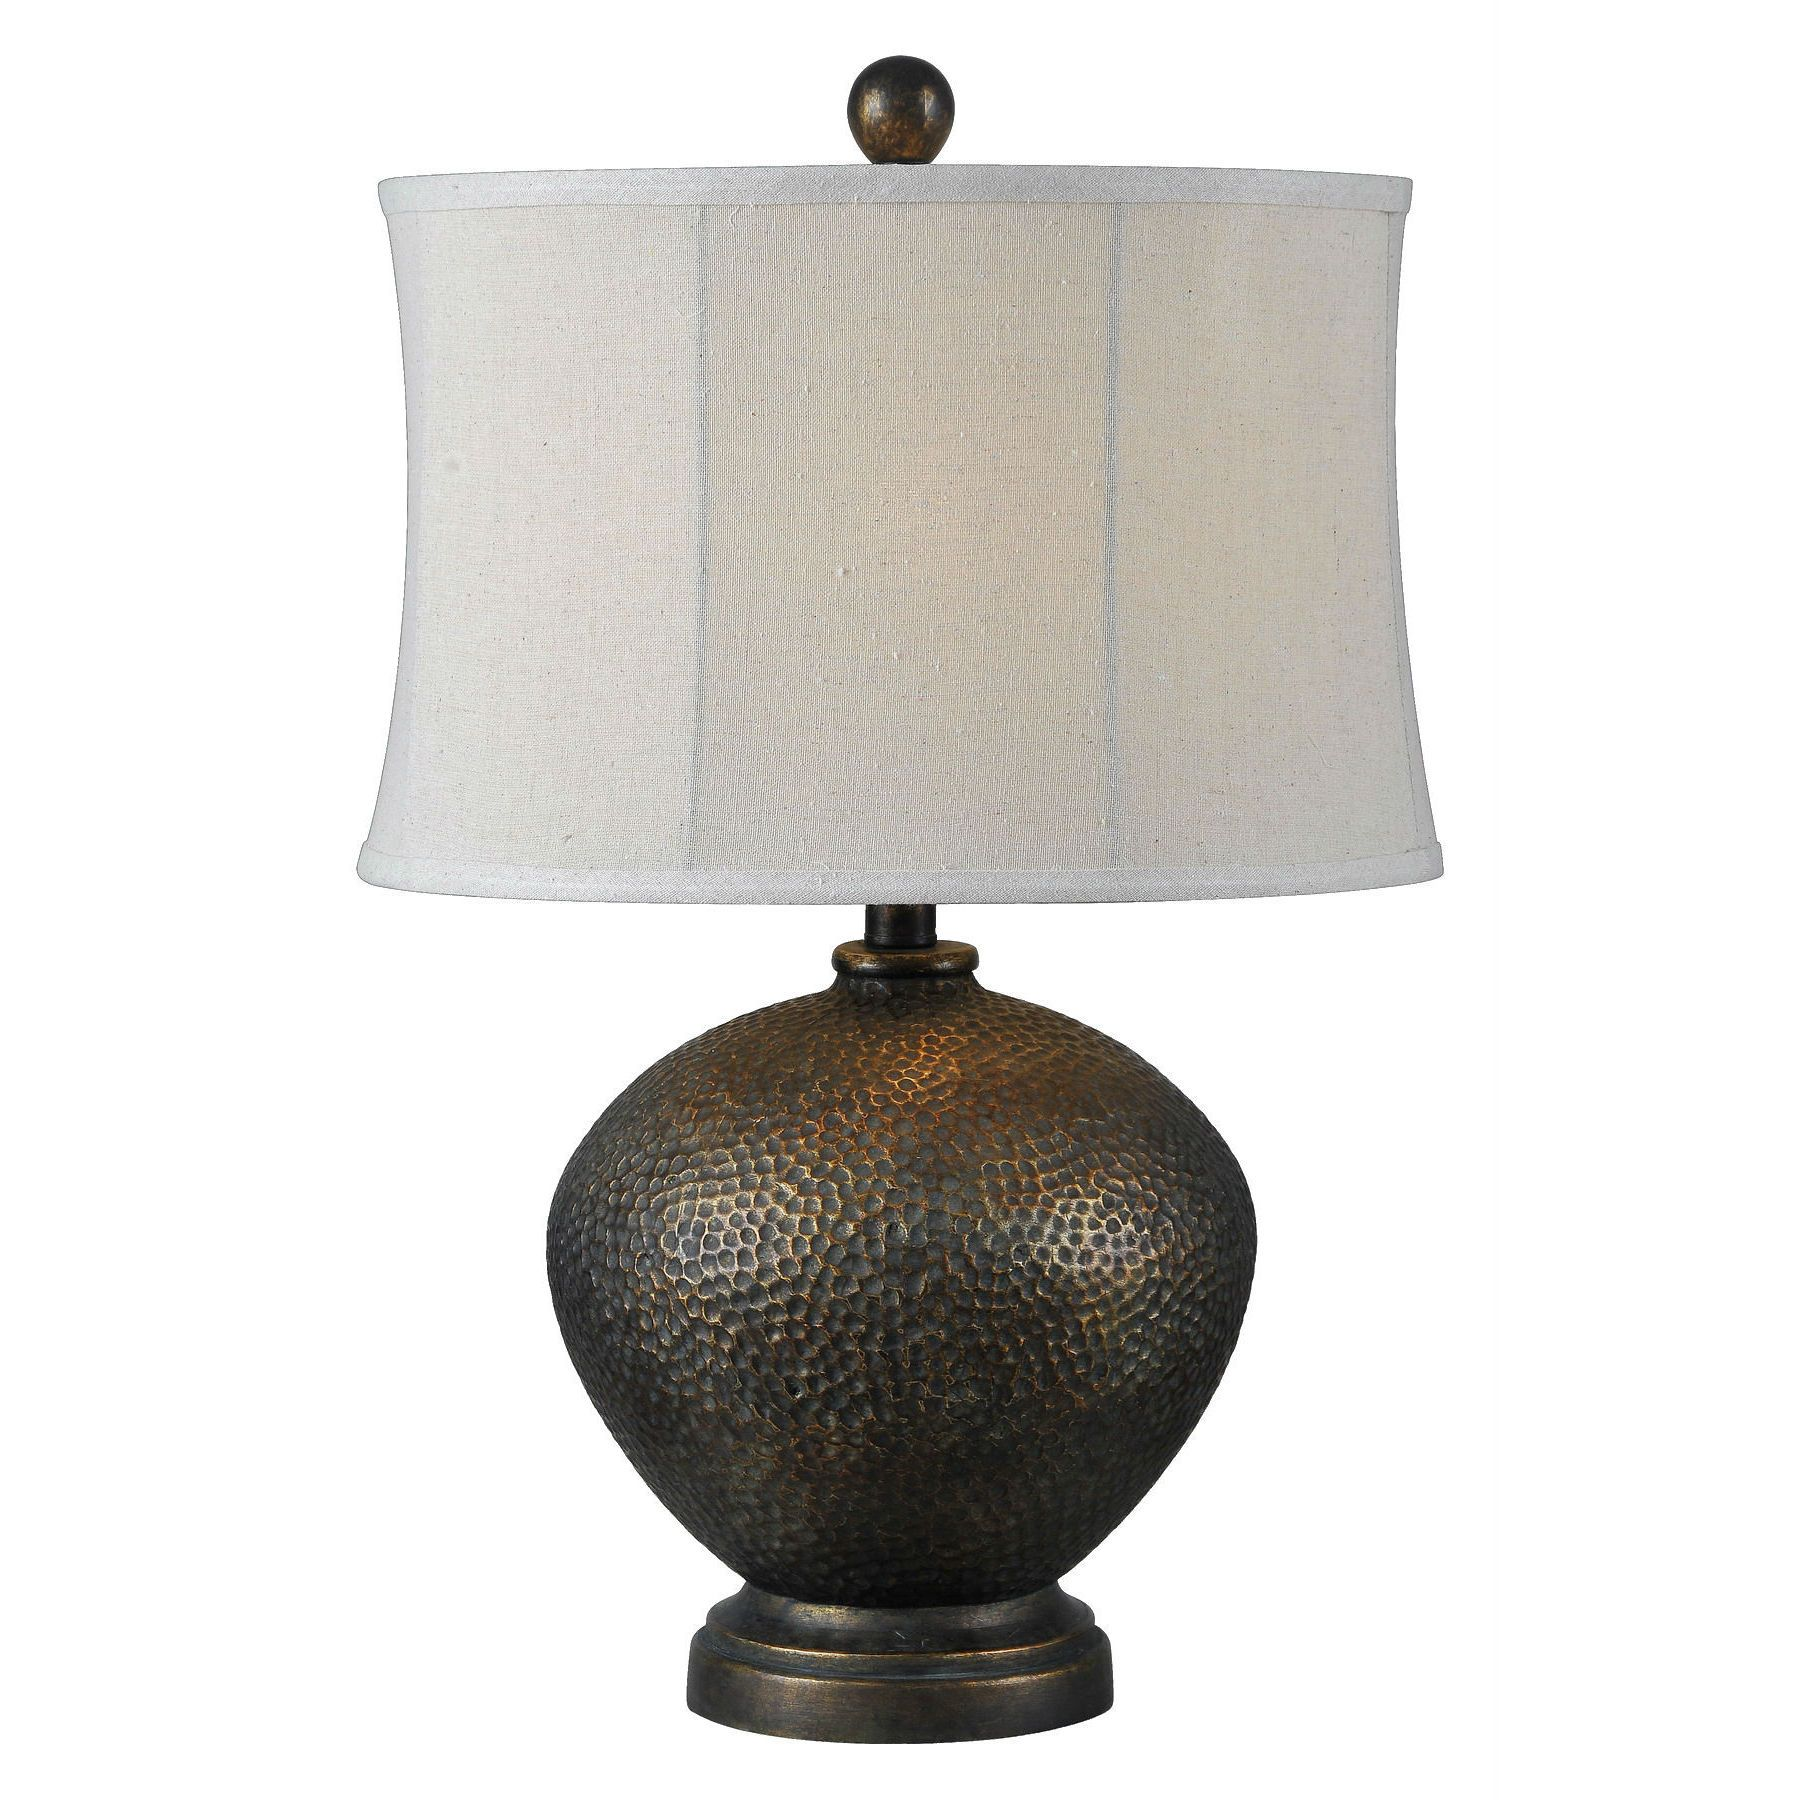 A perfect fit for your lodge collection this hammered metal table a perfect fit for your lodge collection this hammered metal table lamp in oil rubbed bronze adds character to any rustic room mozeypictures Image collections